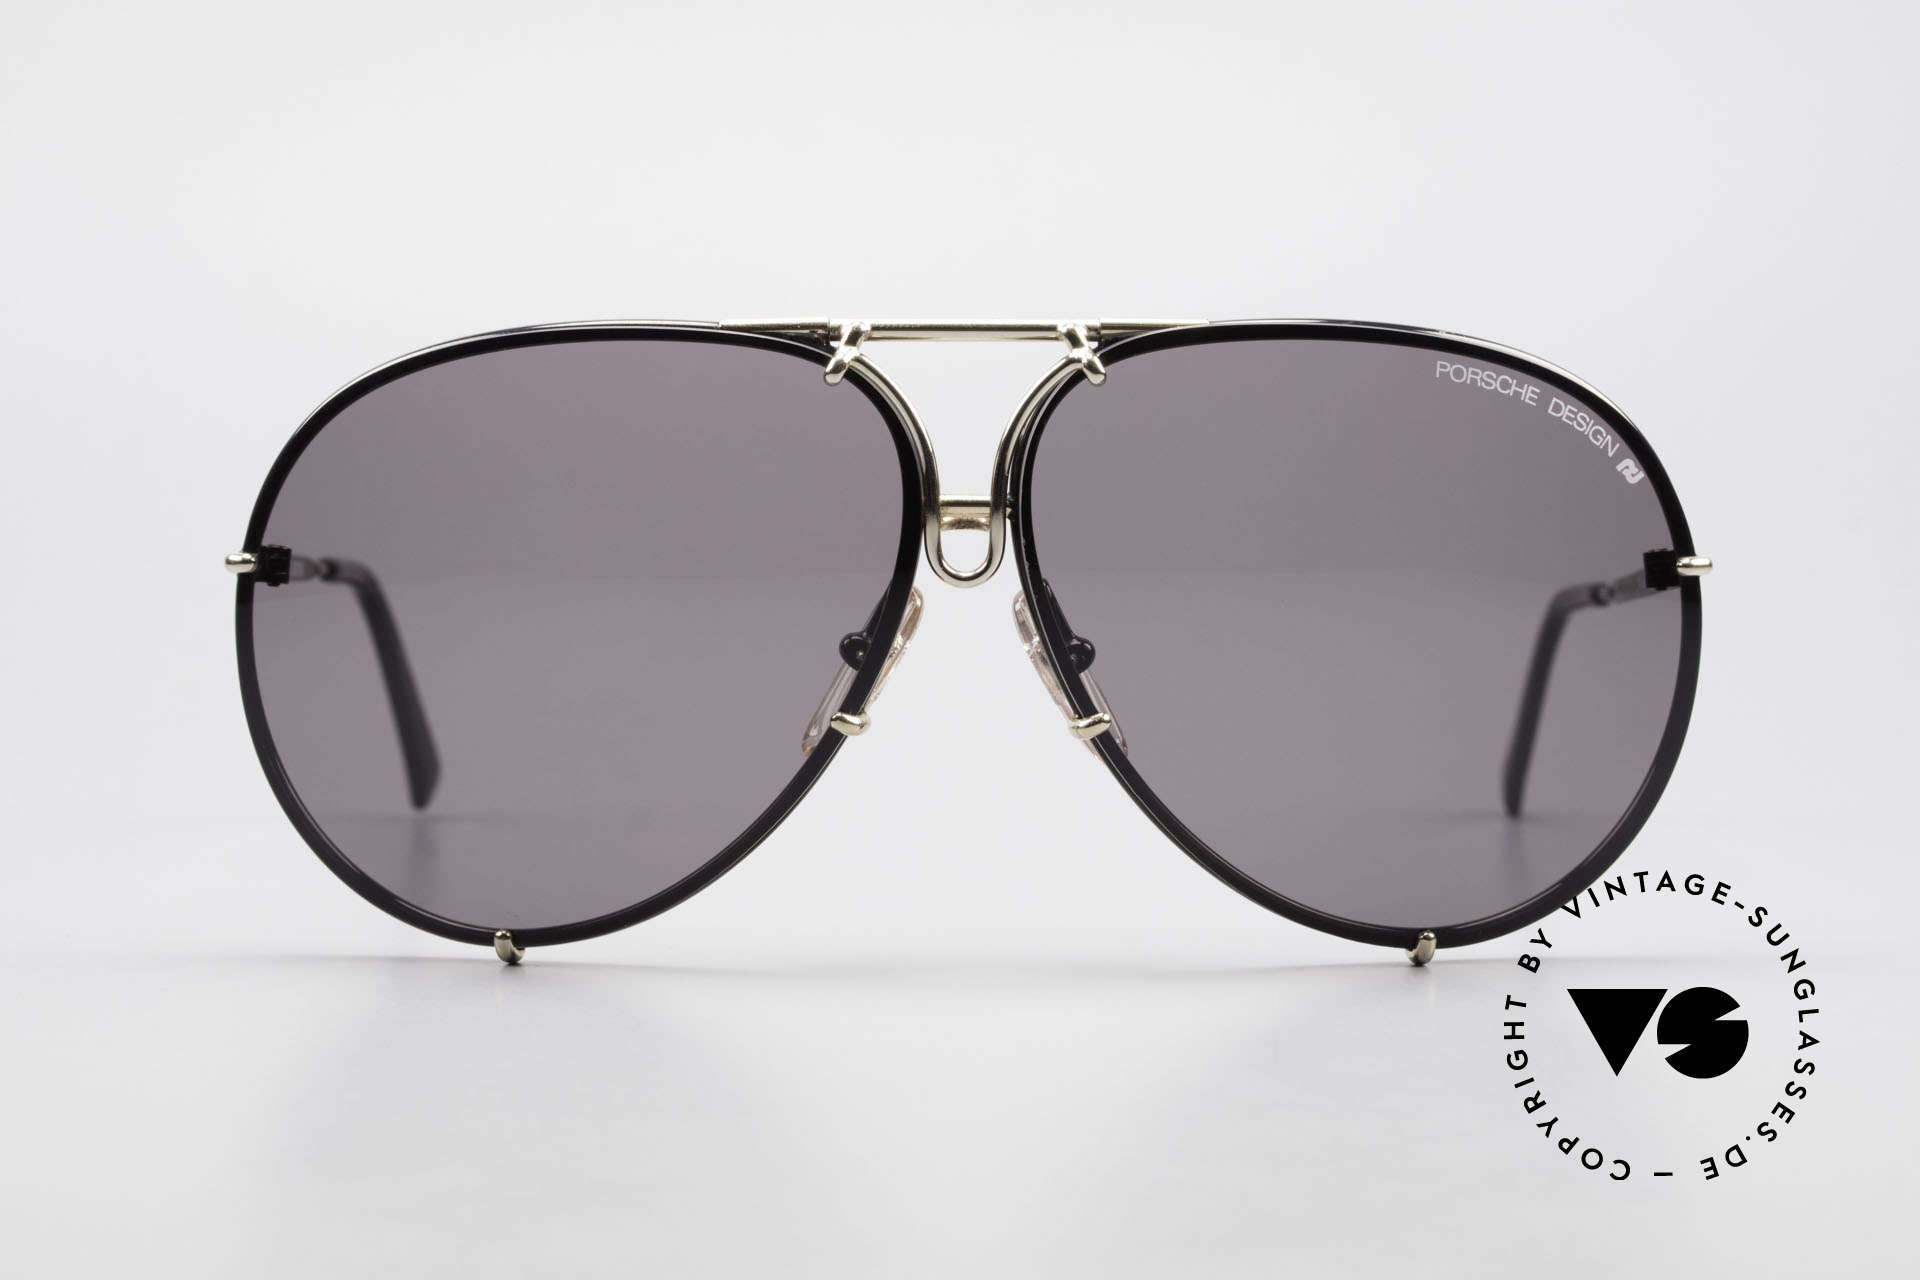 Porsche 5623 One Of A Kind 4times Gradient, comes with extra dark gray sun lenses and Porsche case, Made for Men and Women